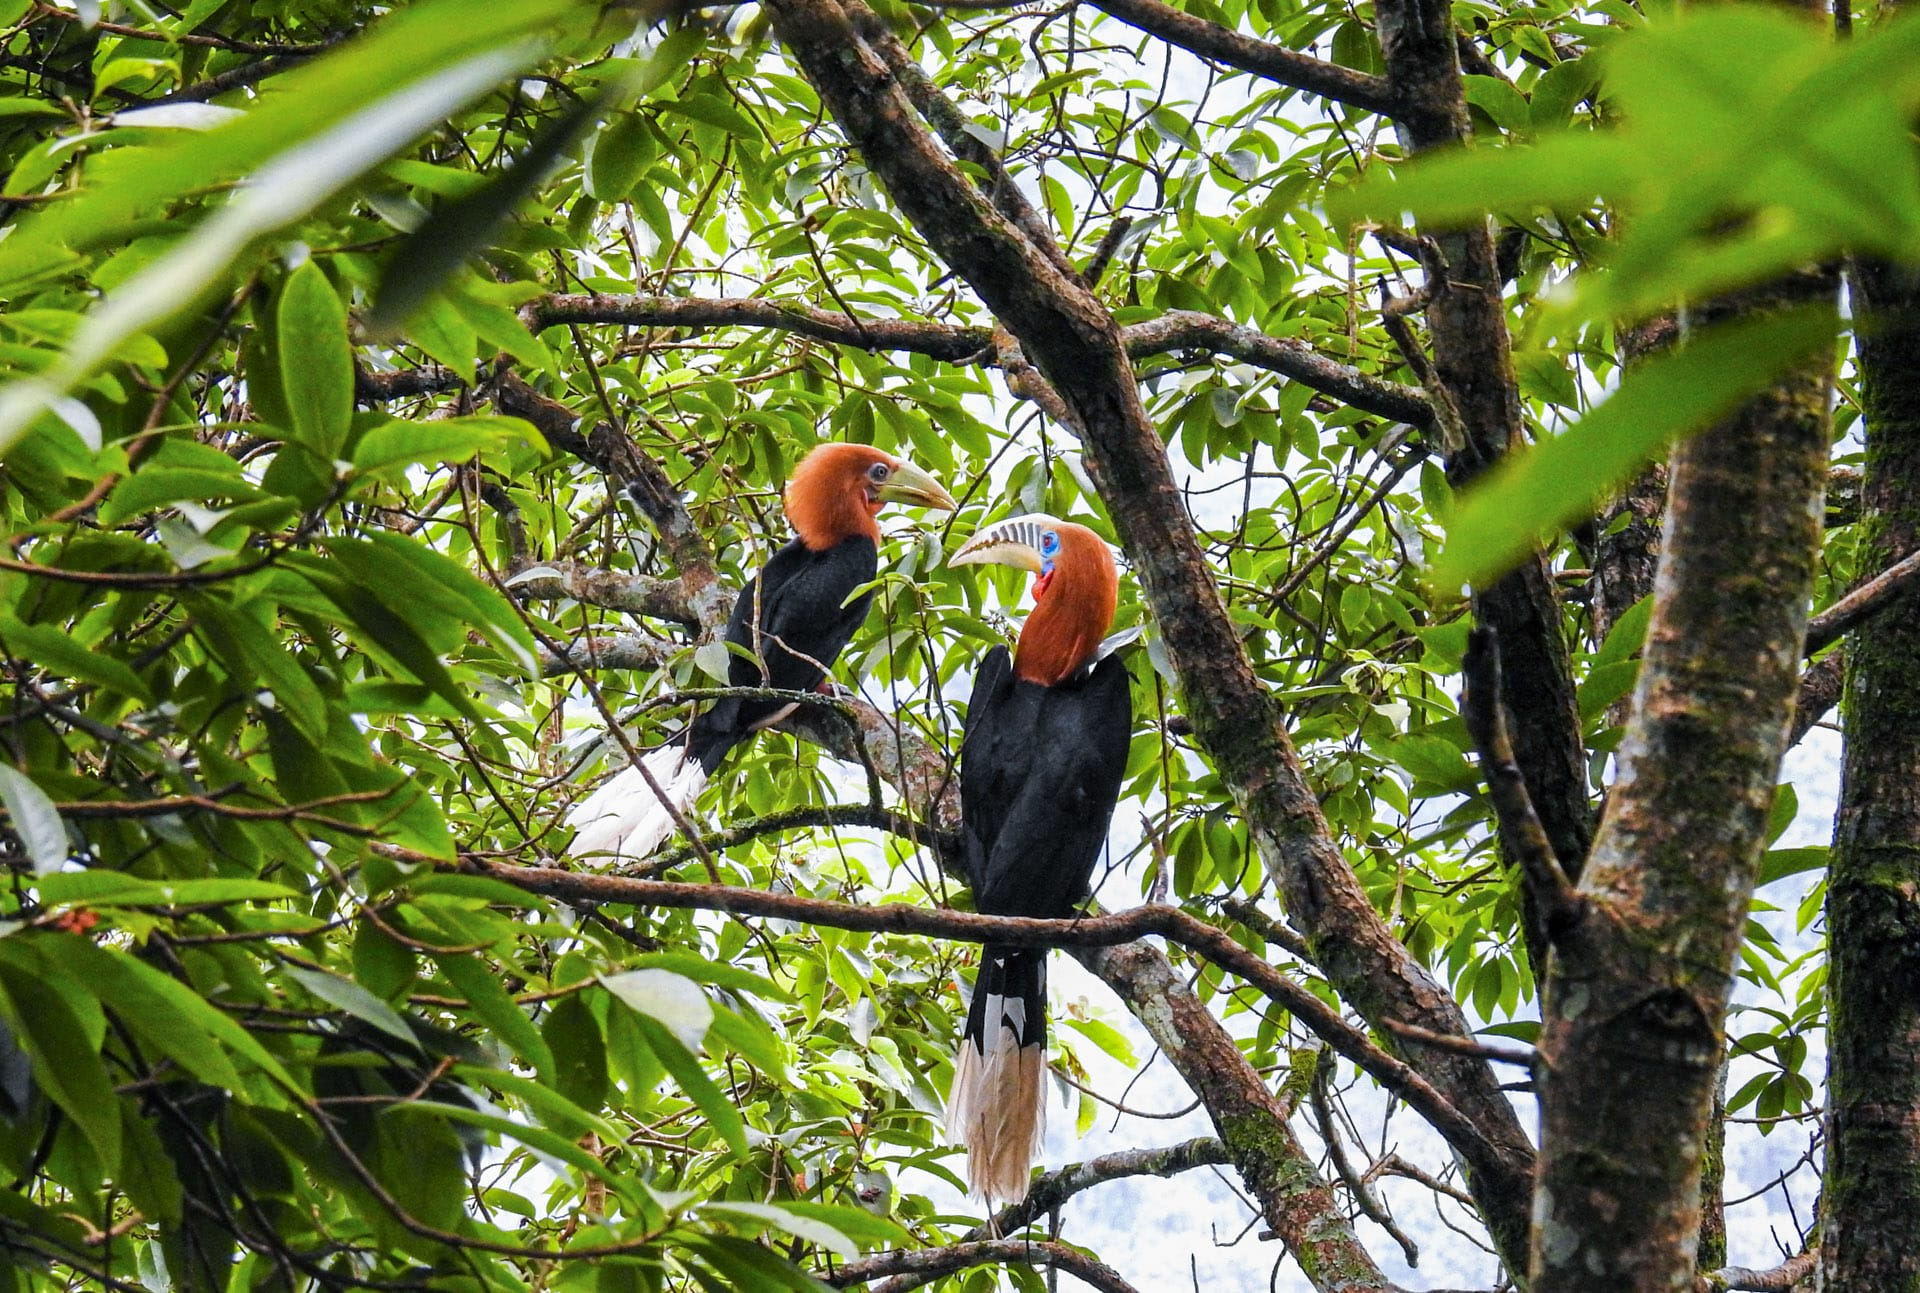 Community protection for the rufous-necked hornbill in Latpanchar provides a safe haven for this magnificent species which is threatened by hunting and habitat loss throughout its range. Photo: Parag Gurung